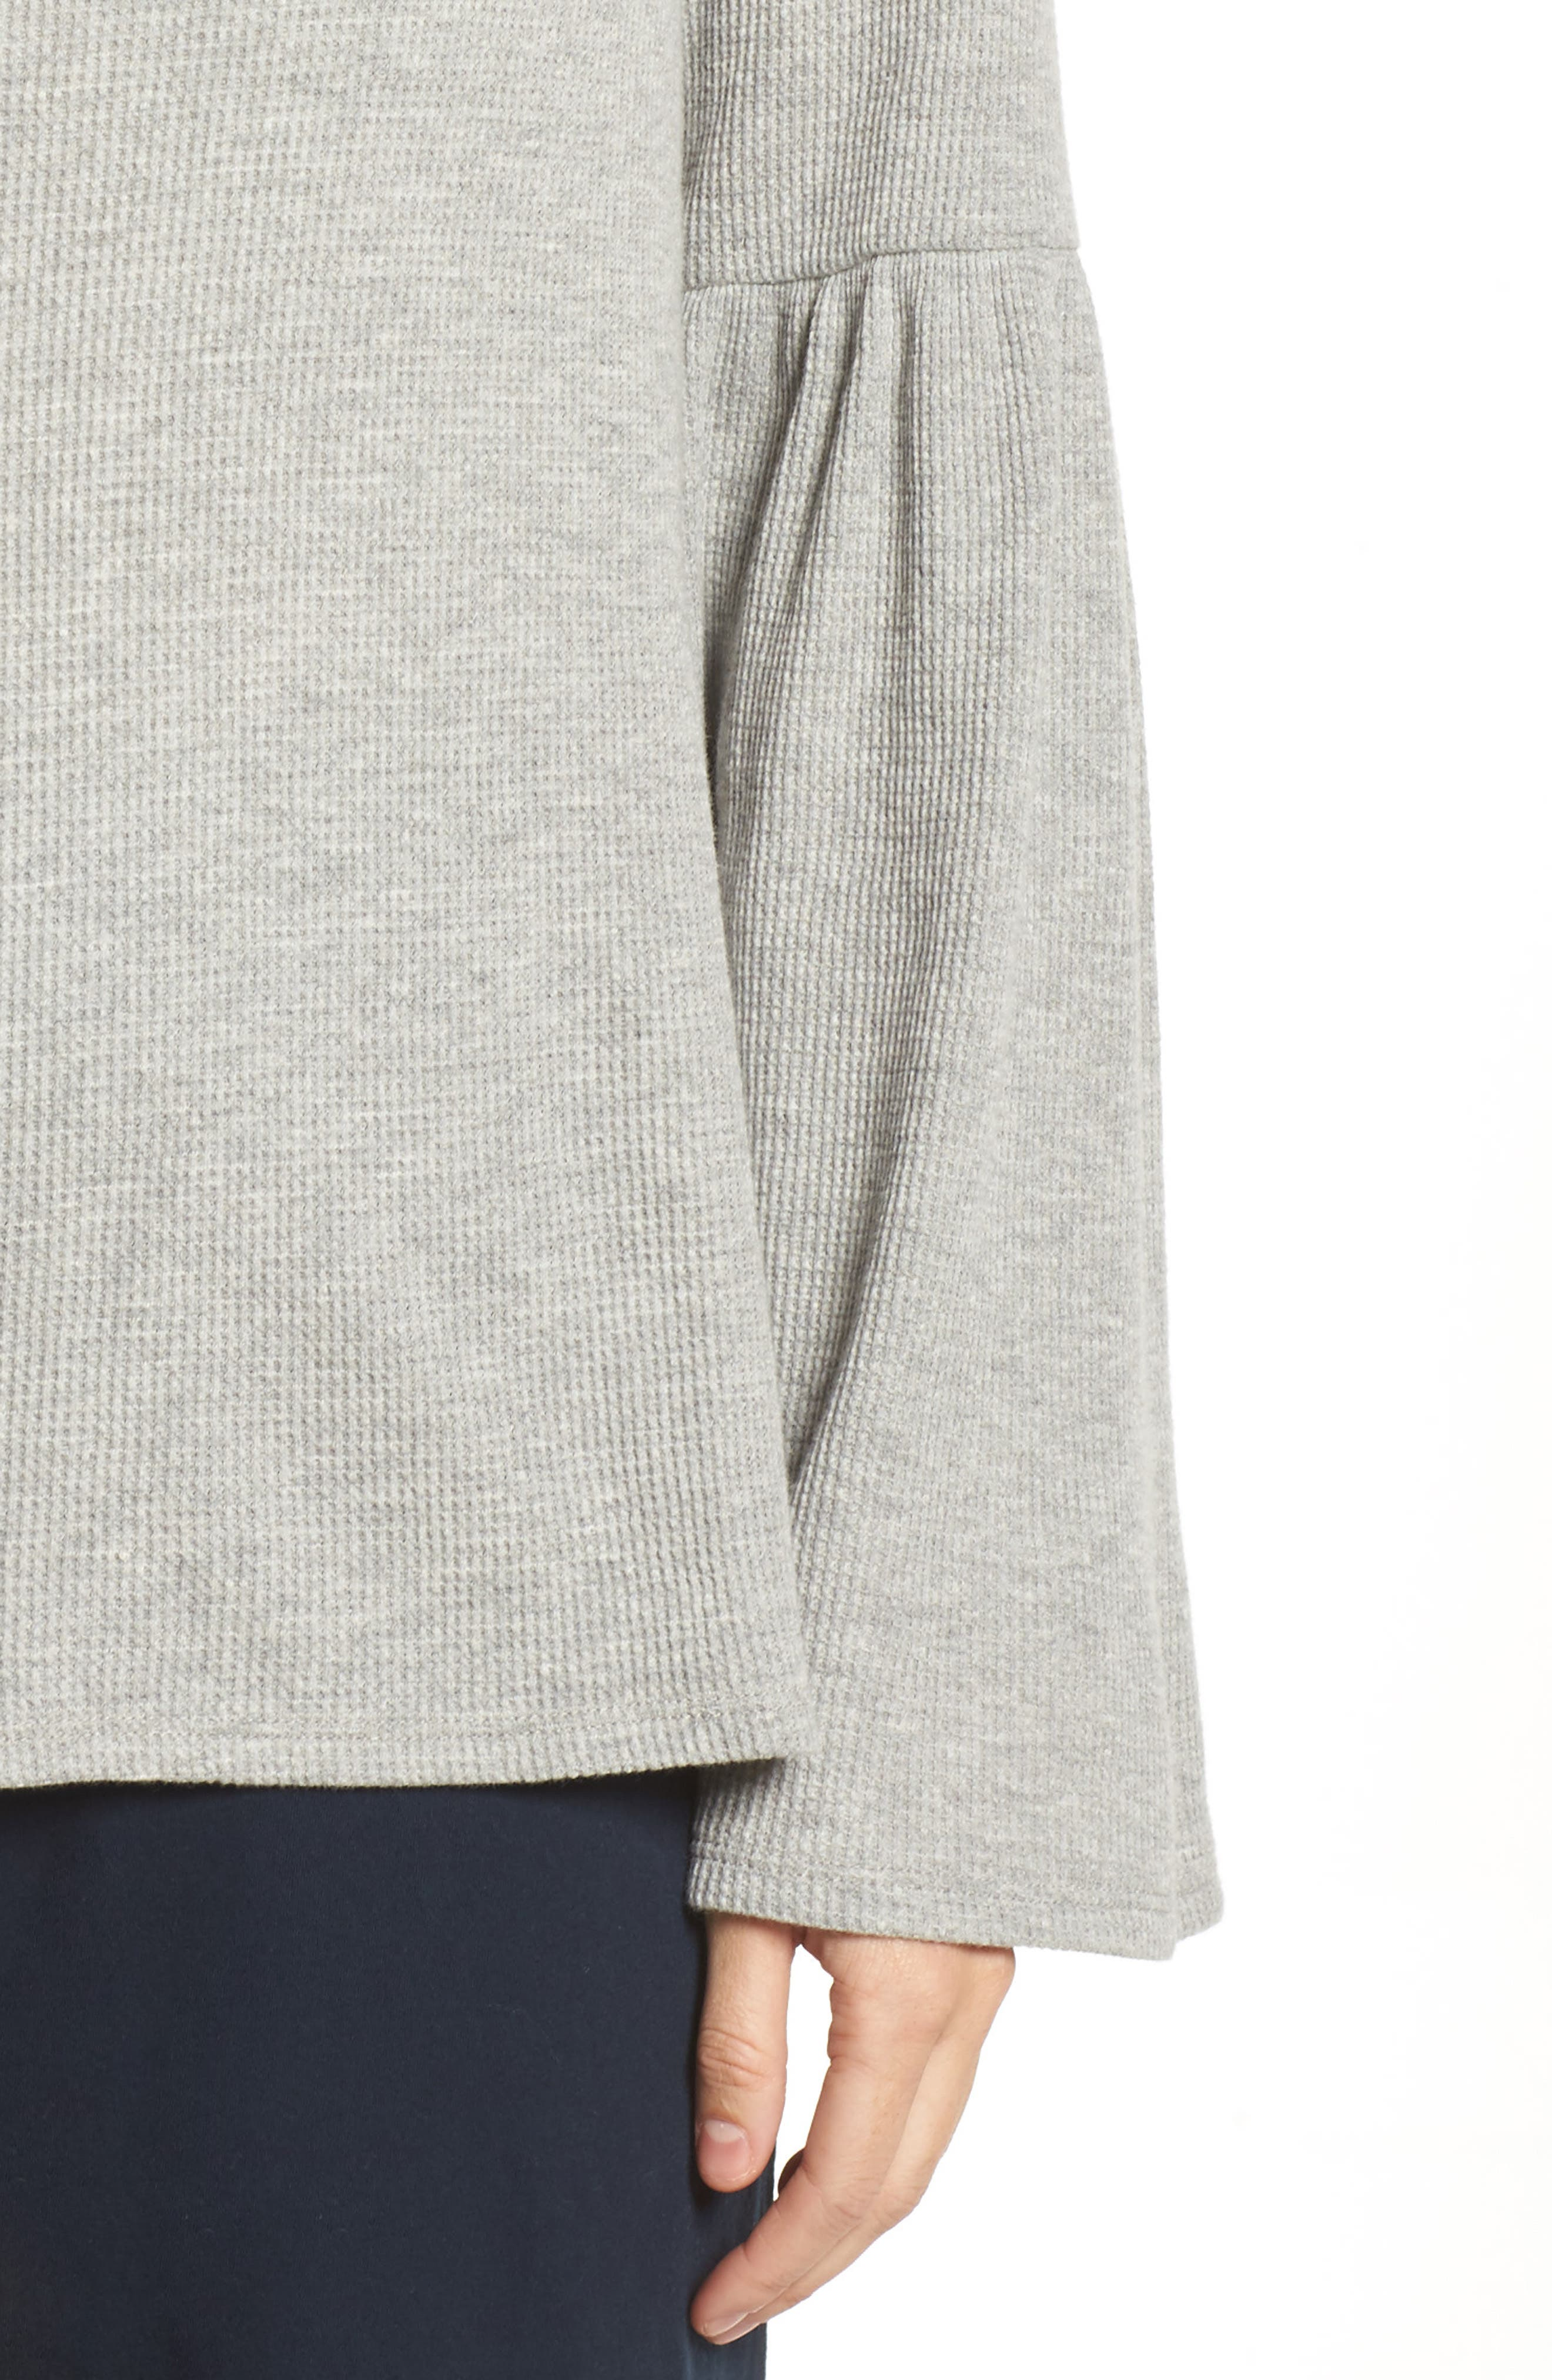 Imo Thermal Knit Tee,                             Alternate thumbnail 5, color,                             Heather Grey